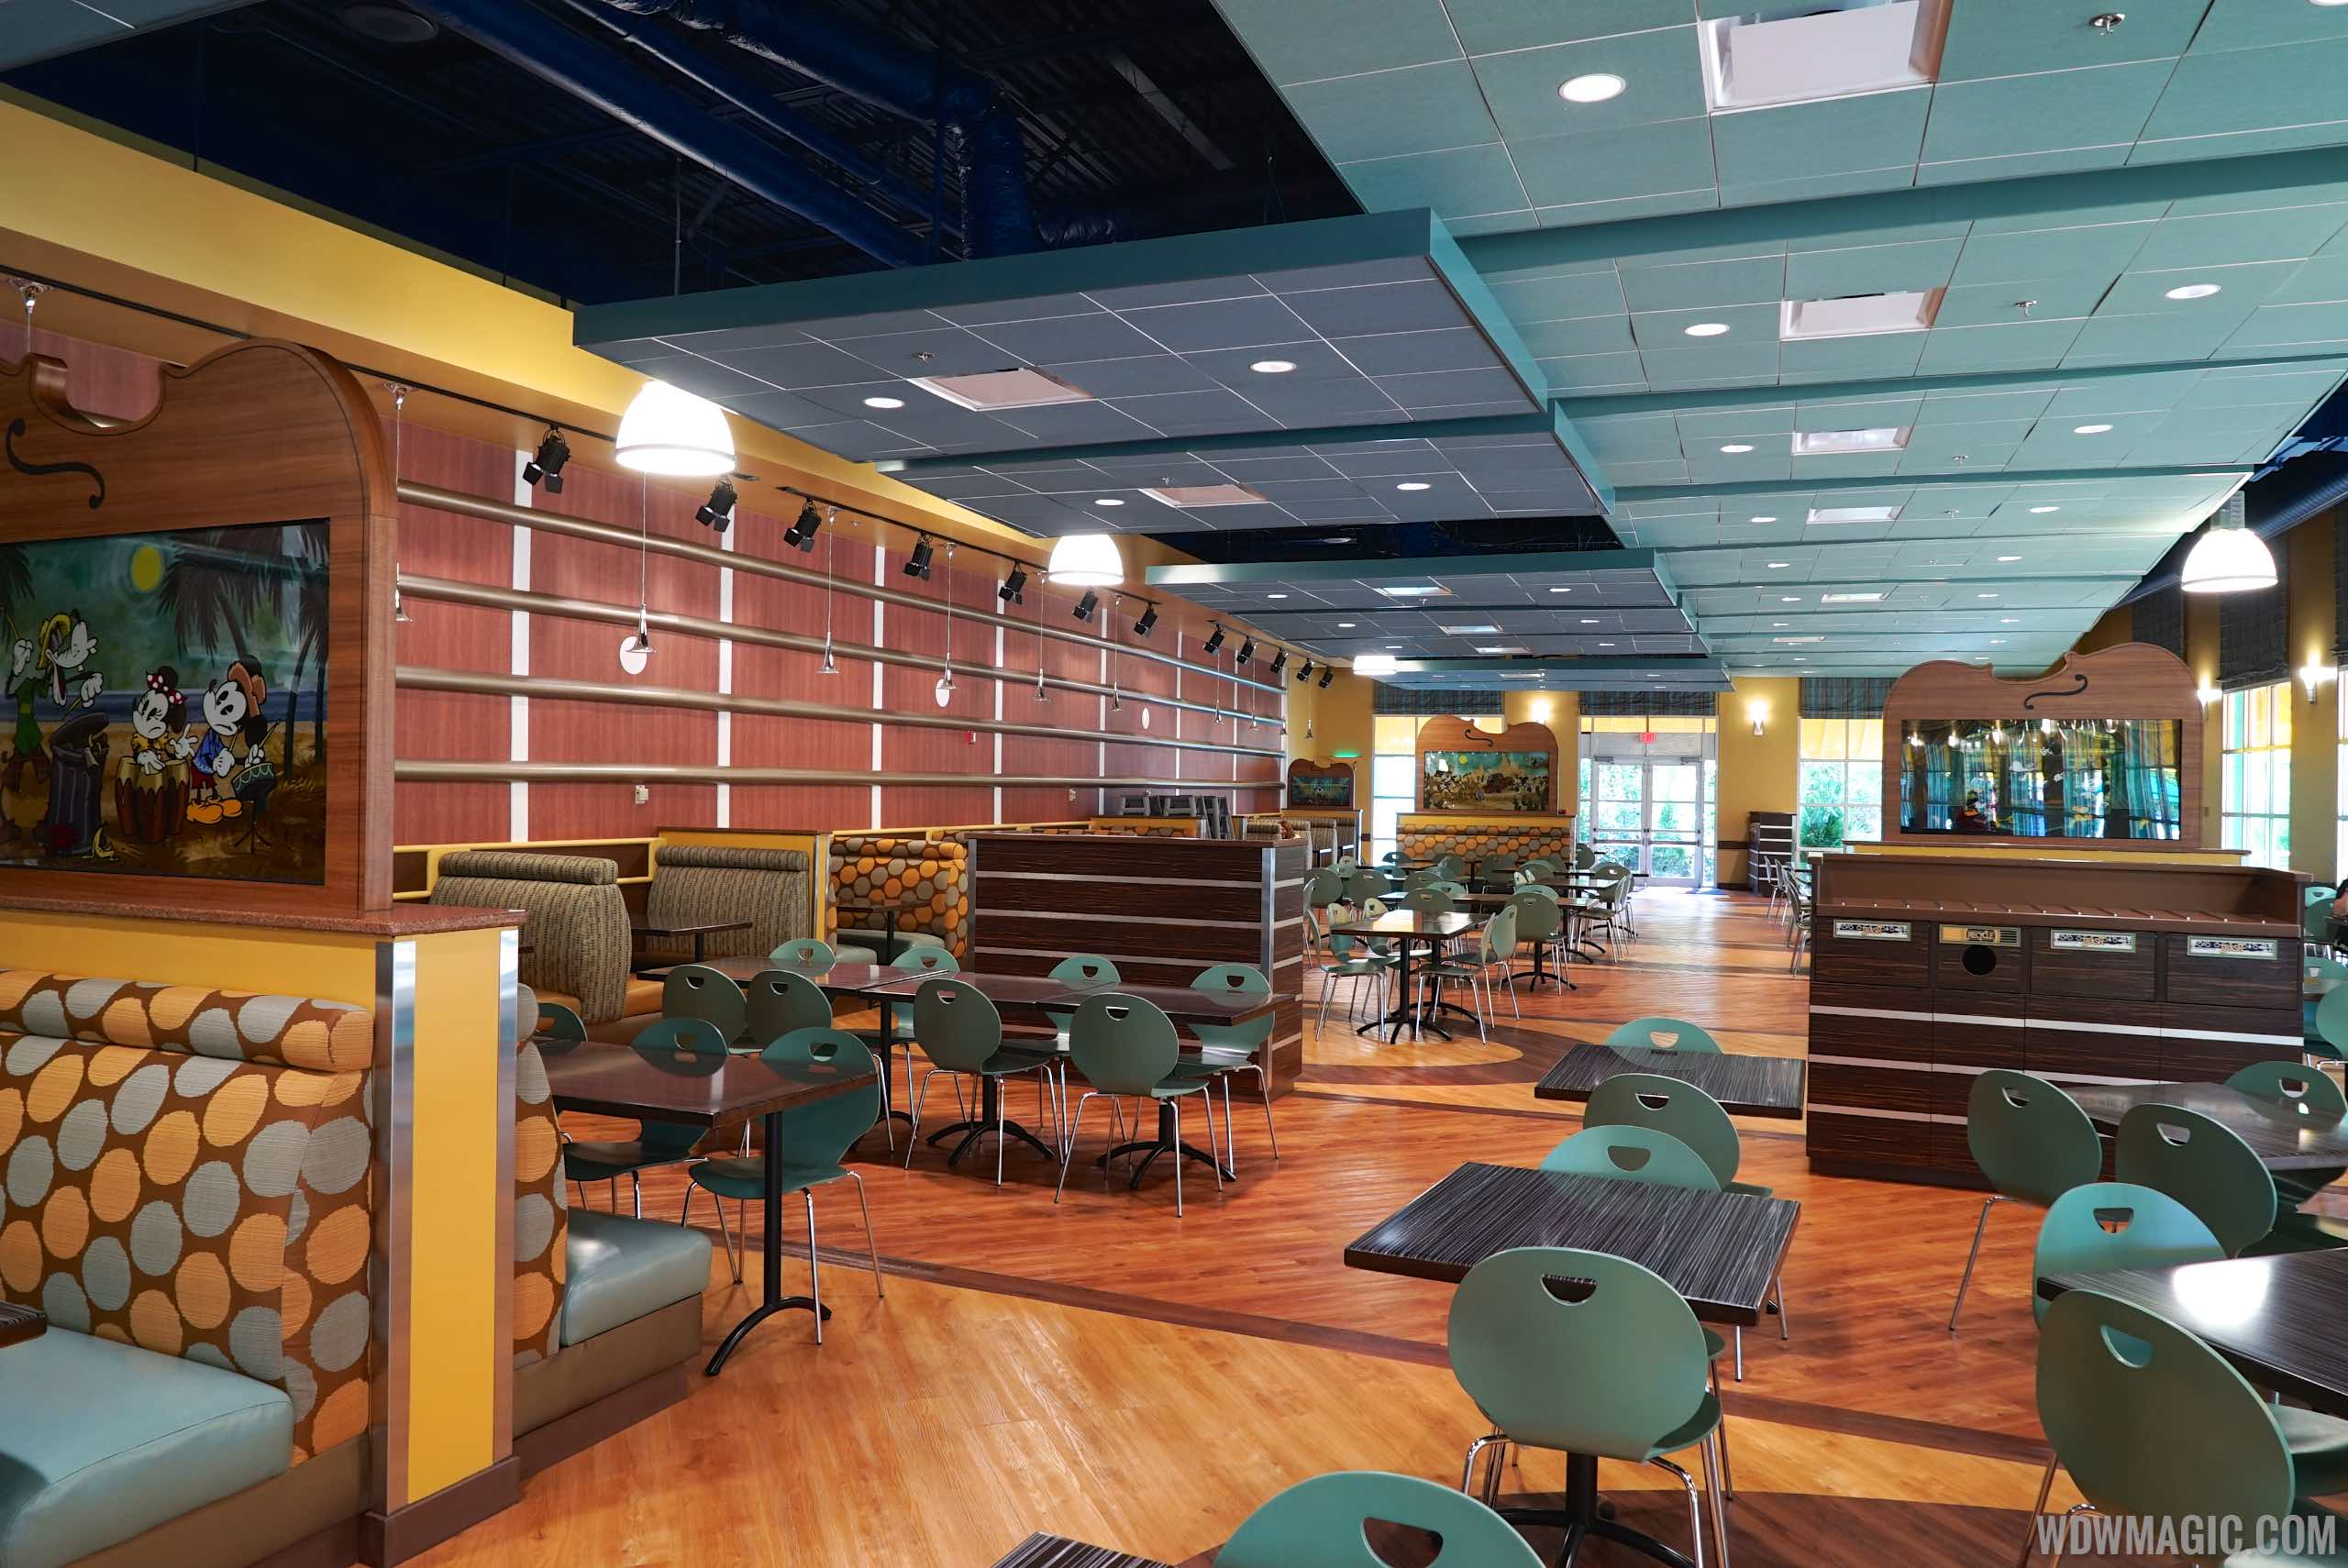 Dining room at the new Intermission Food Court